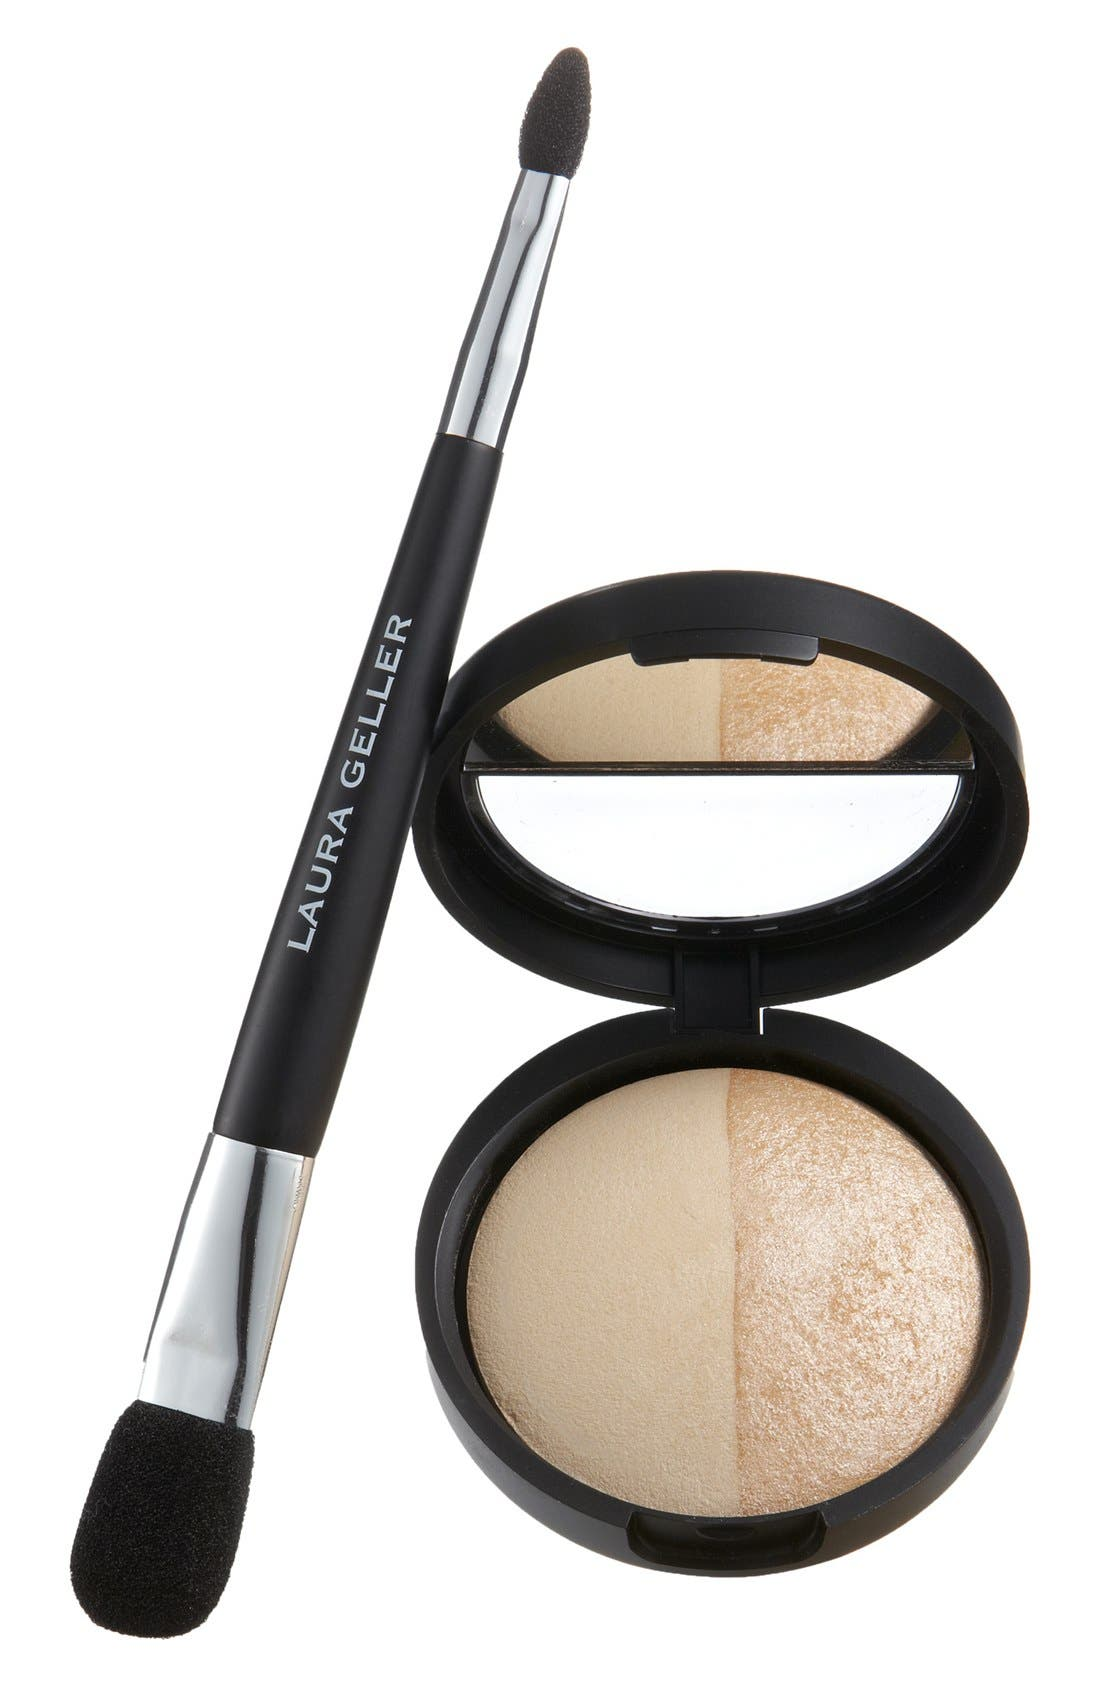 Baked Split Highlighter & Double-Ended Face & Eye Applicator,                             Main thumbnail 1, color,                             900